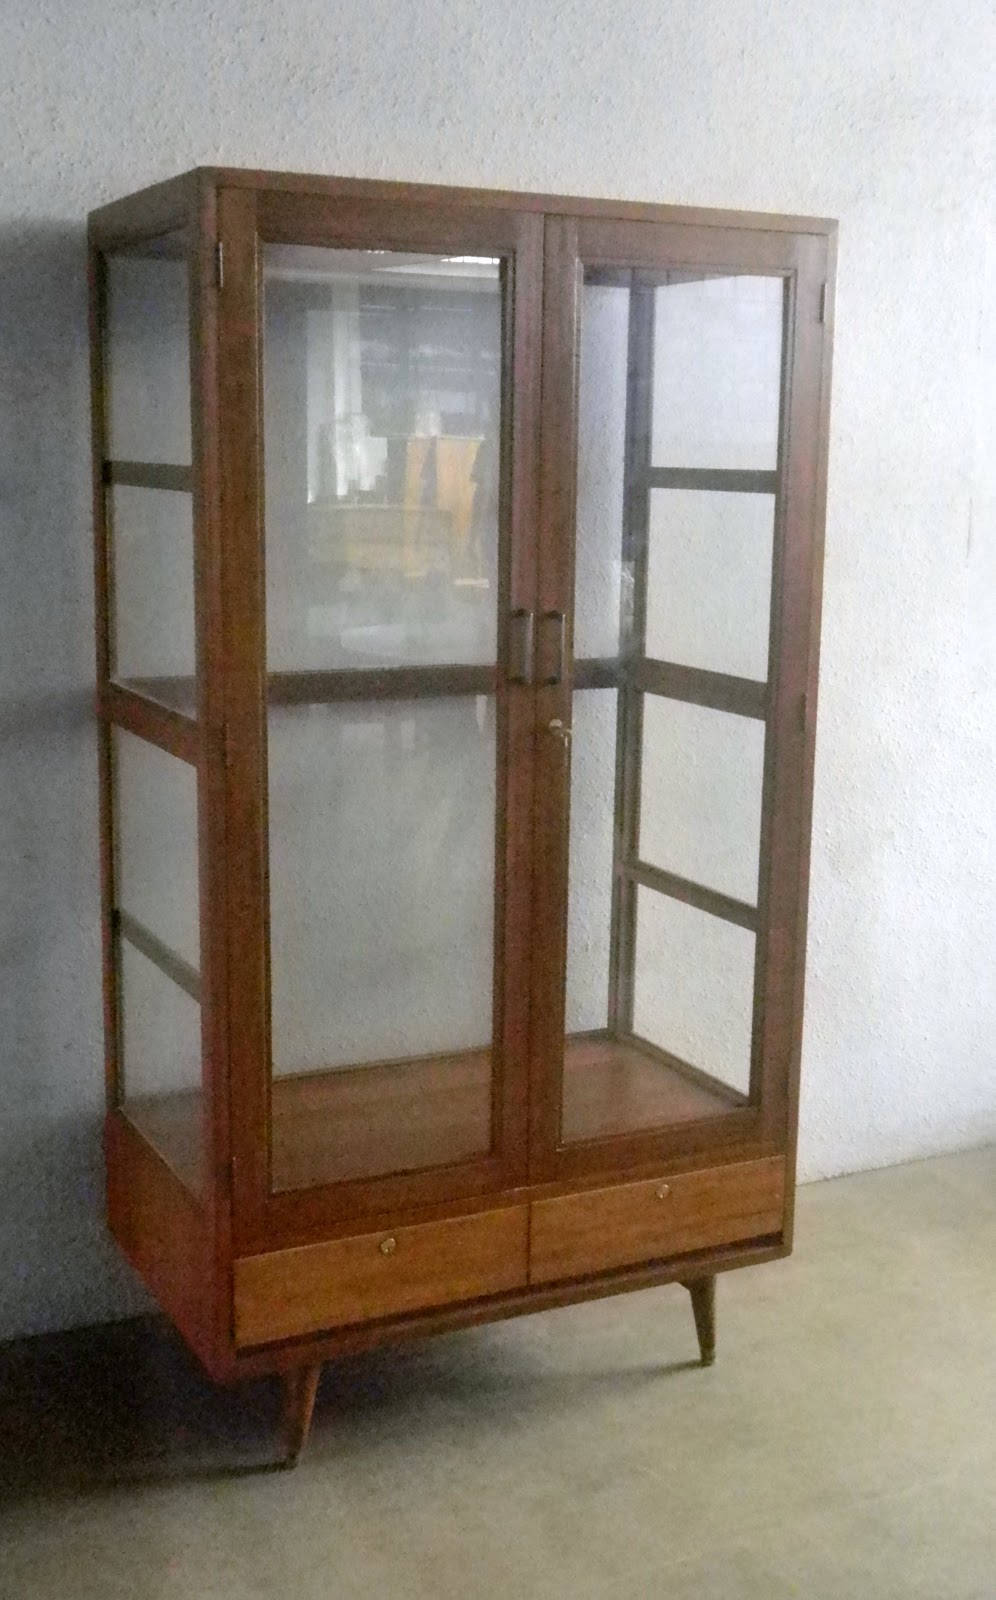 Old Glass Display Cabinets 32 With Old Glass Display Cabinets intended for sizing 996 X 1600